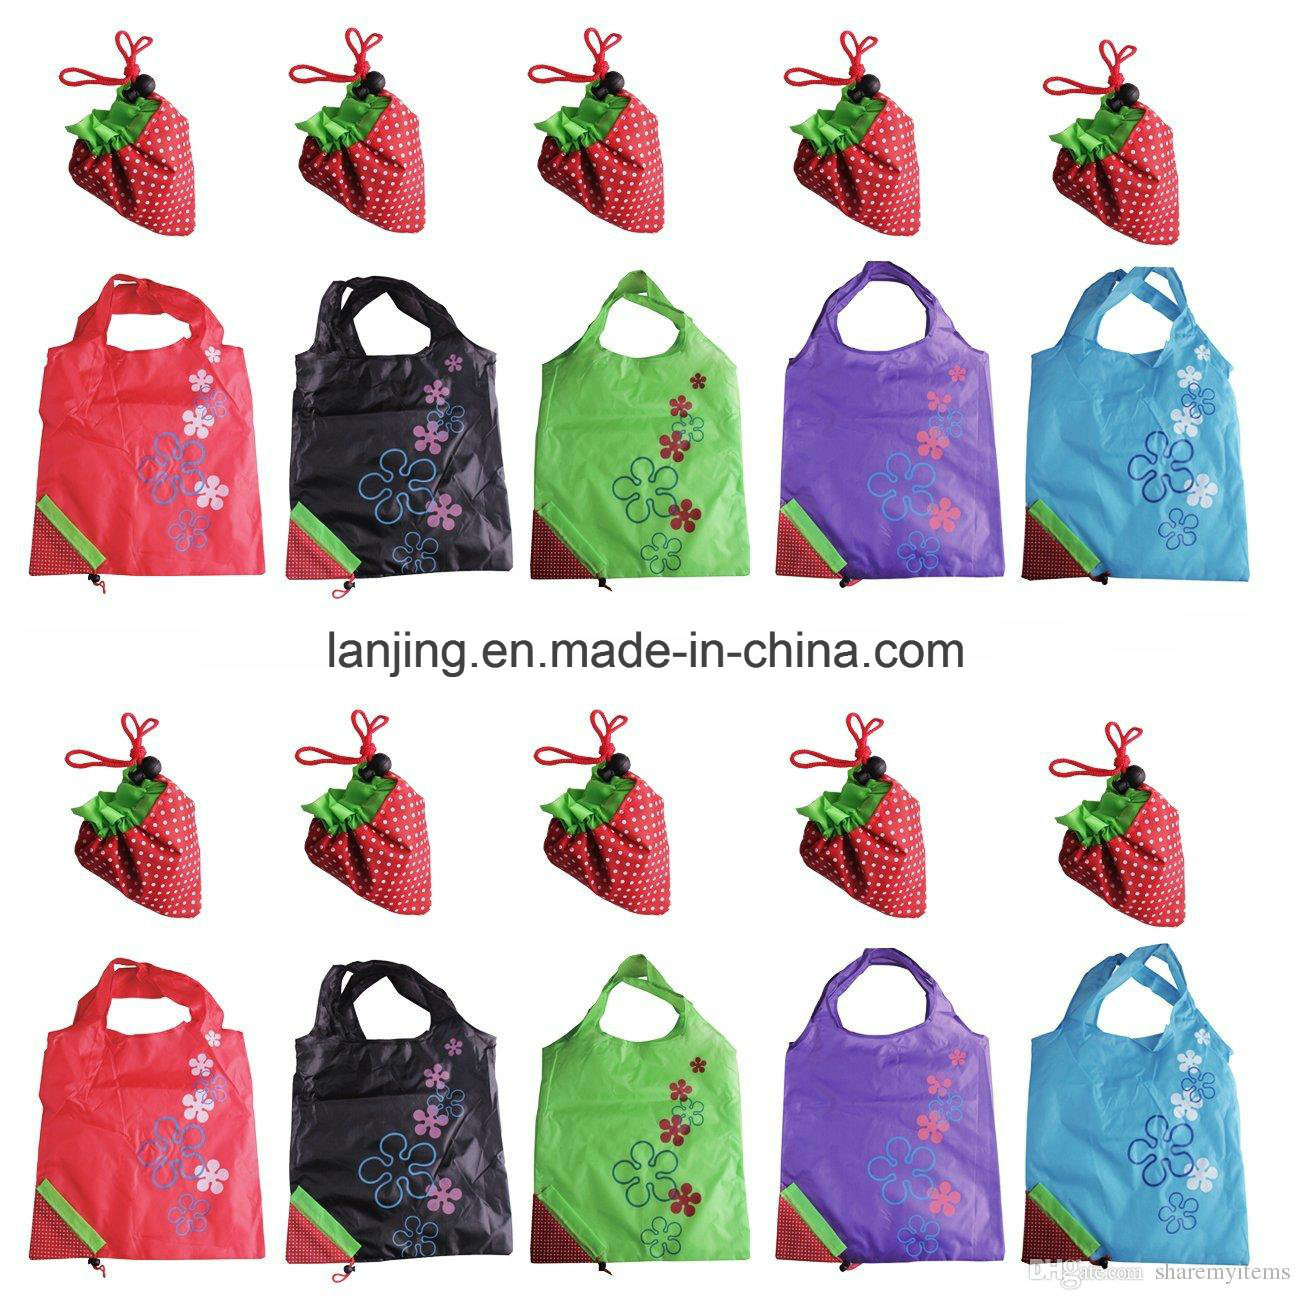 Bw1-080 Nylon/Polyester Reusable Strawberry Foldable Bag Gift Shopping Bags